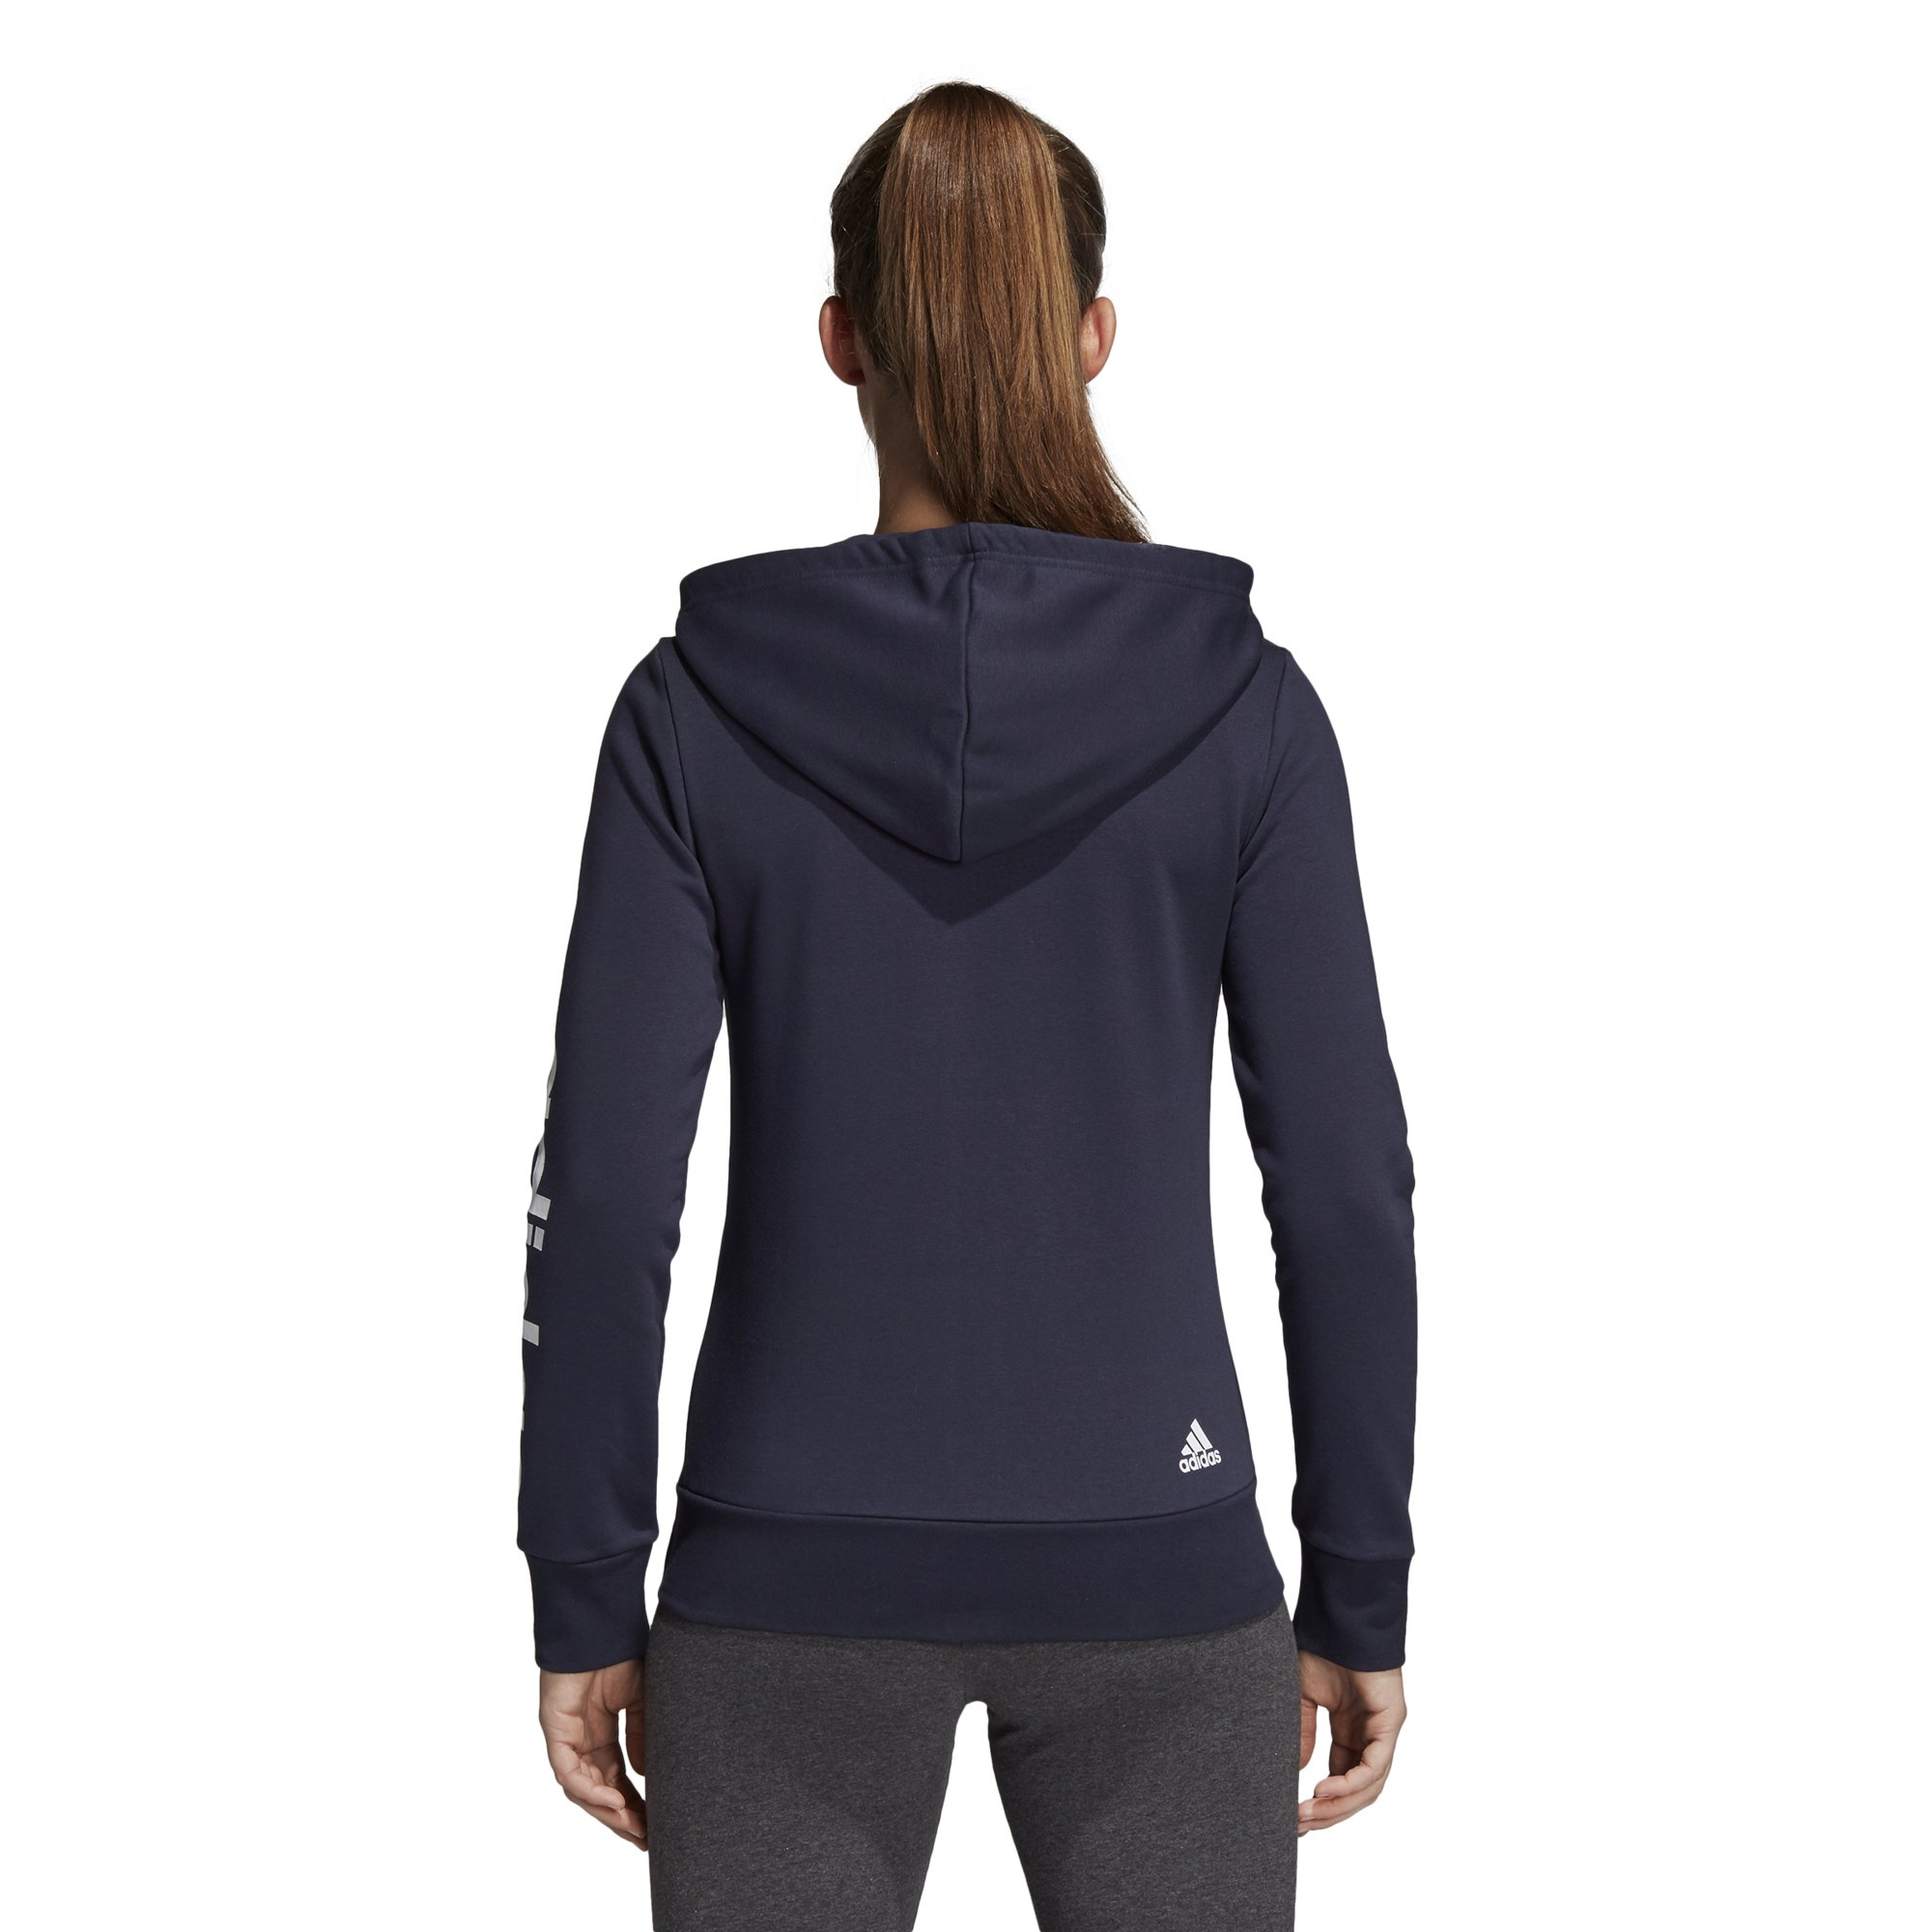 adidas Women's Essentials Linear Full Zip Hoodie Legend Ink/White X-Small by adidas (Image #6)